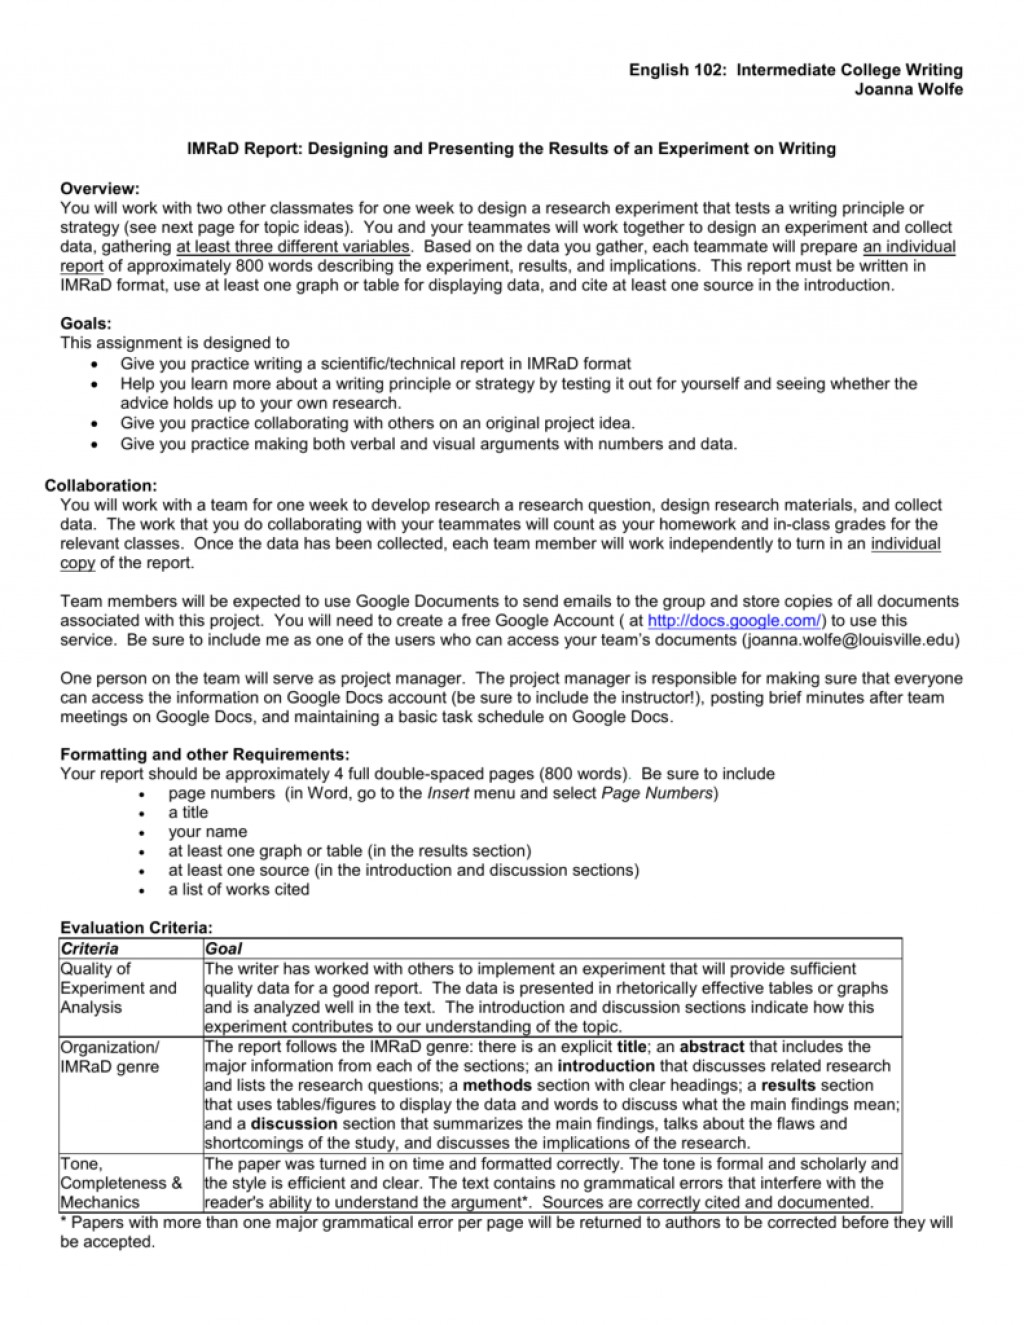 004 Essay Example 008942553 1 Essays Online To Remarkable Read Free Best Large